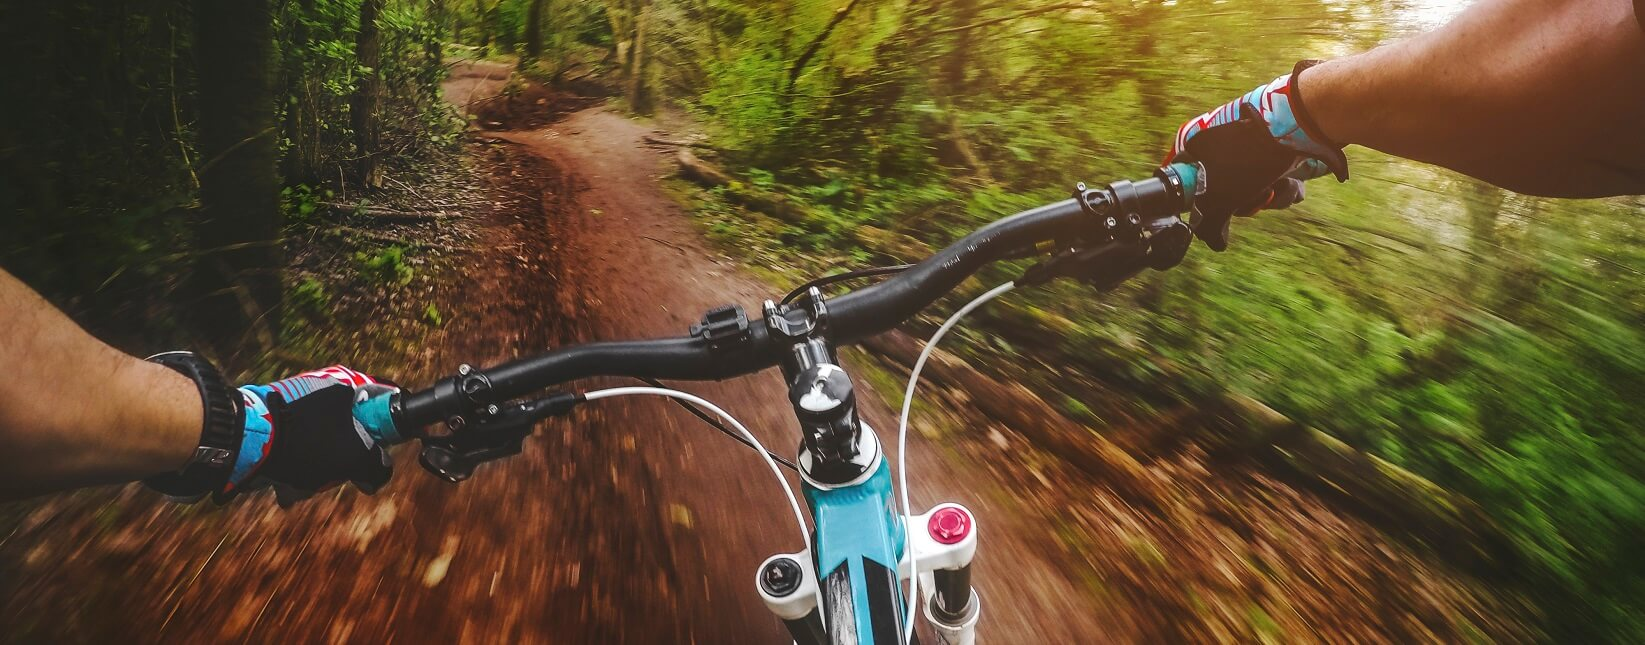 Mountain bike thrills on the Gold Coast